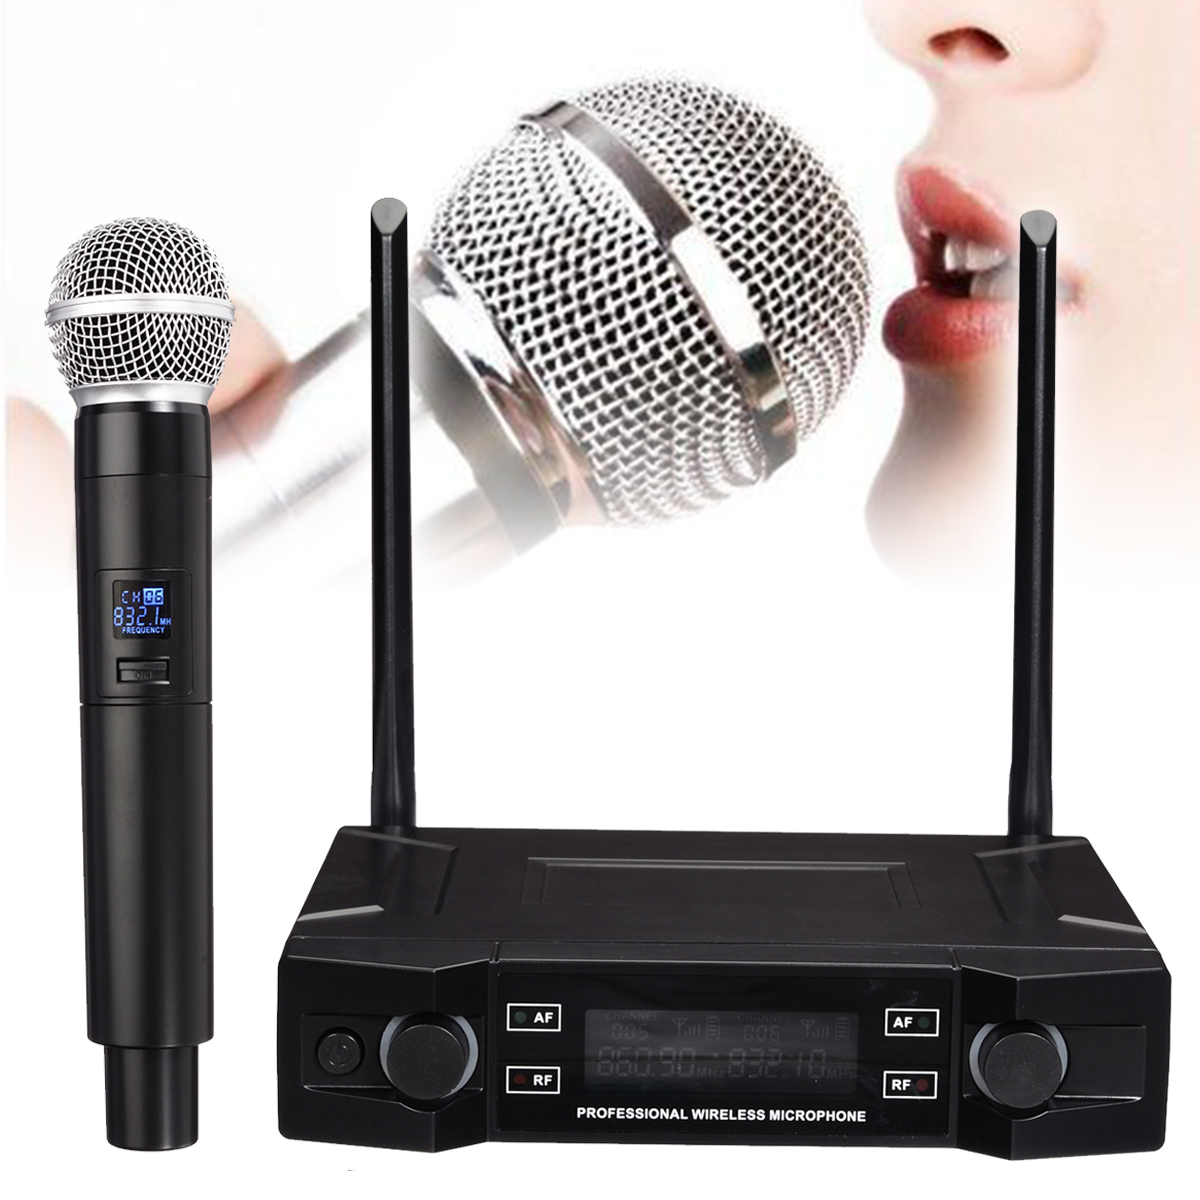 Wireless Microphone System 2 Channel Cordless Handheld Mic Receiver Microphones Karaoke for Home Party Stage Mic SpeakersWireless Microphone System 2 Channel Cordless Handheld Mic Receiver Microphones Karaoke for Home Party Stage Mic Speakers